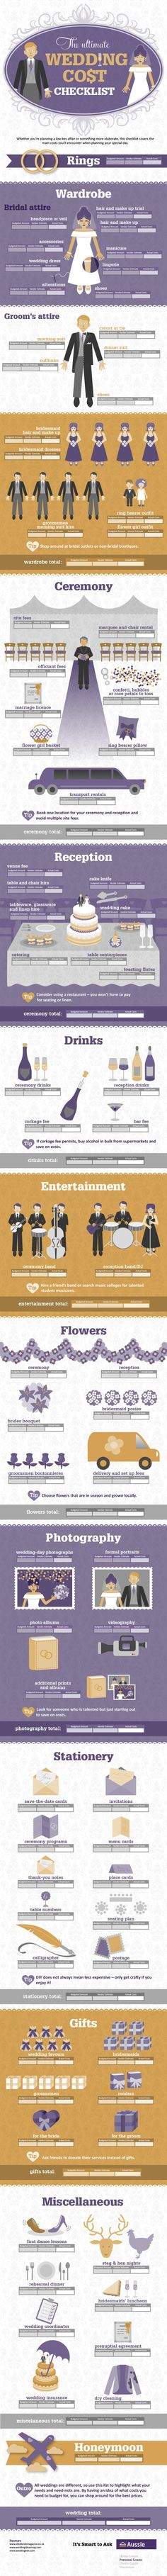 The Ultimate Wedding Cost Checklist Infographic.. wow. one day